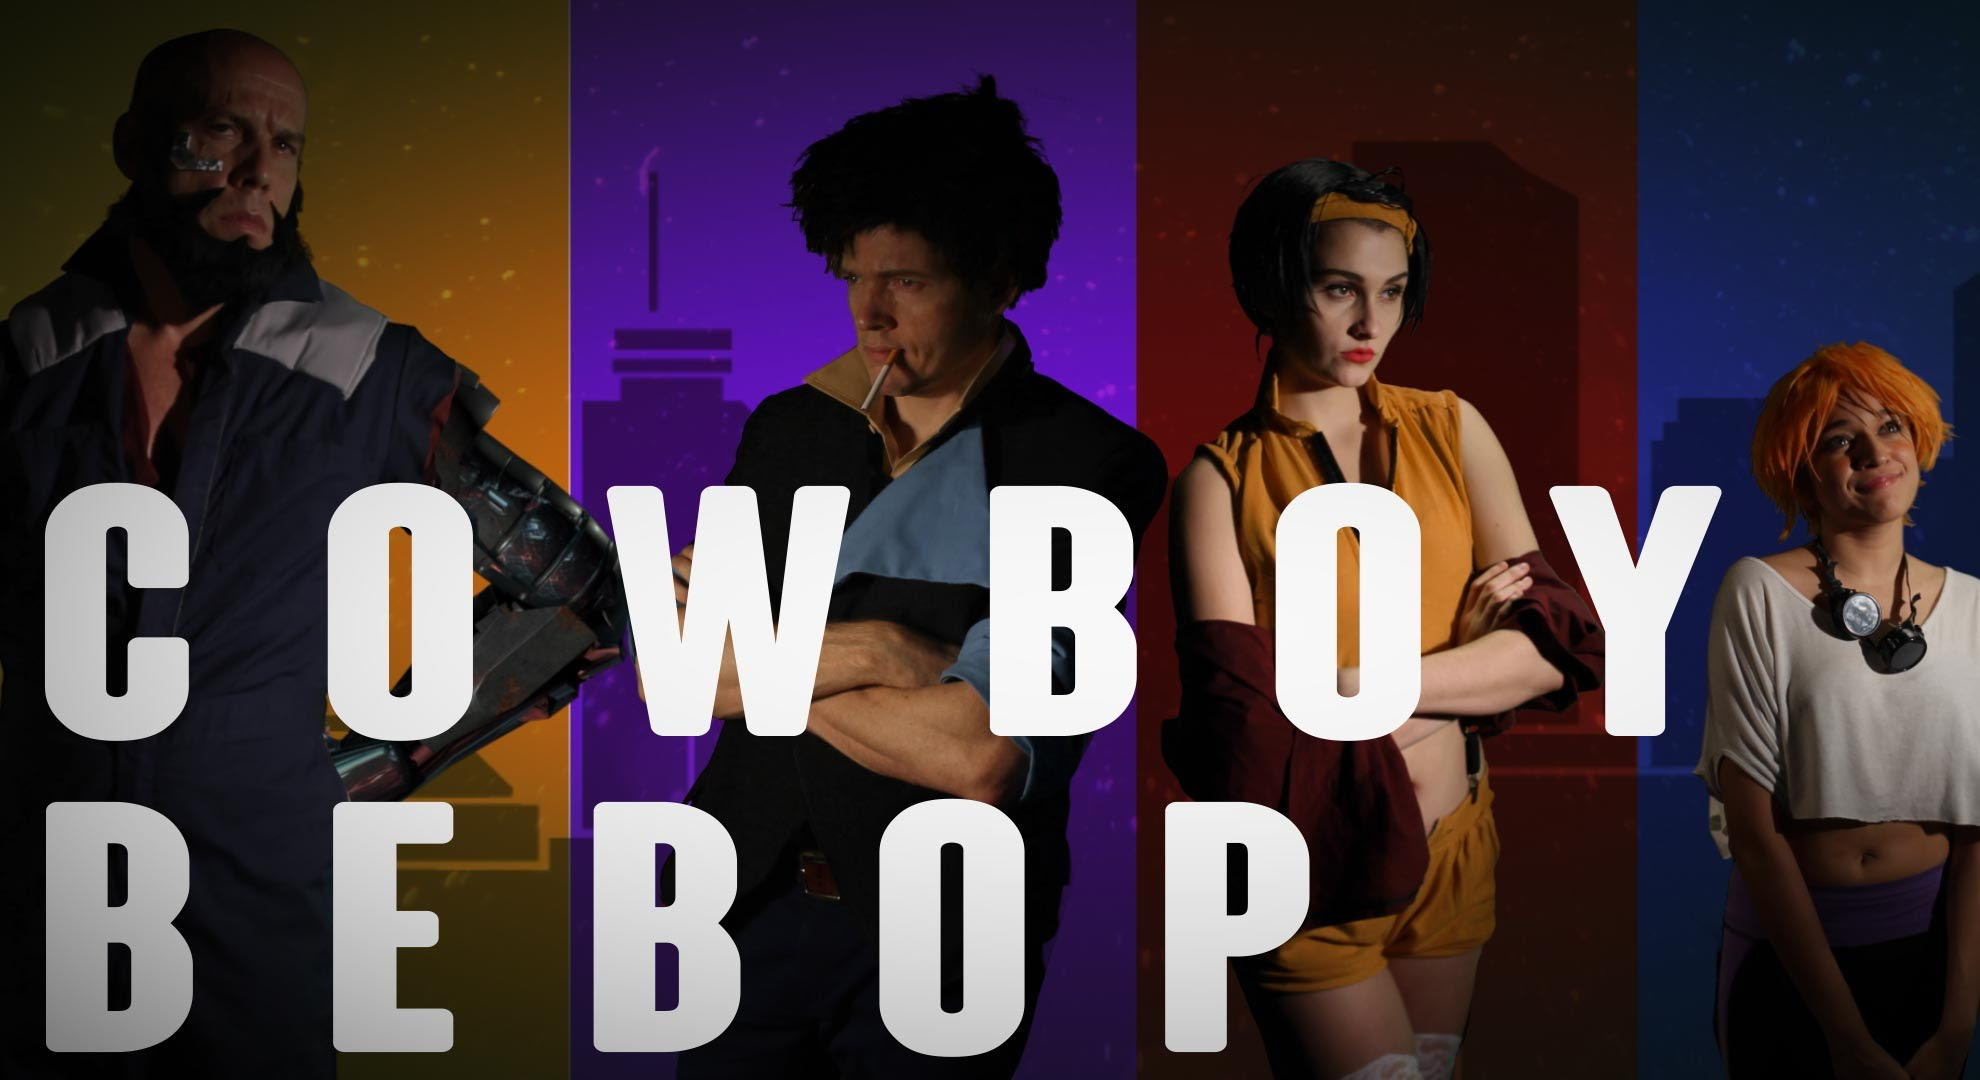 Cowboy Bebop Live Action Film Trailer